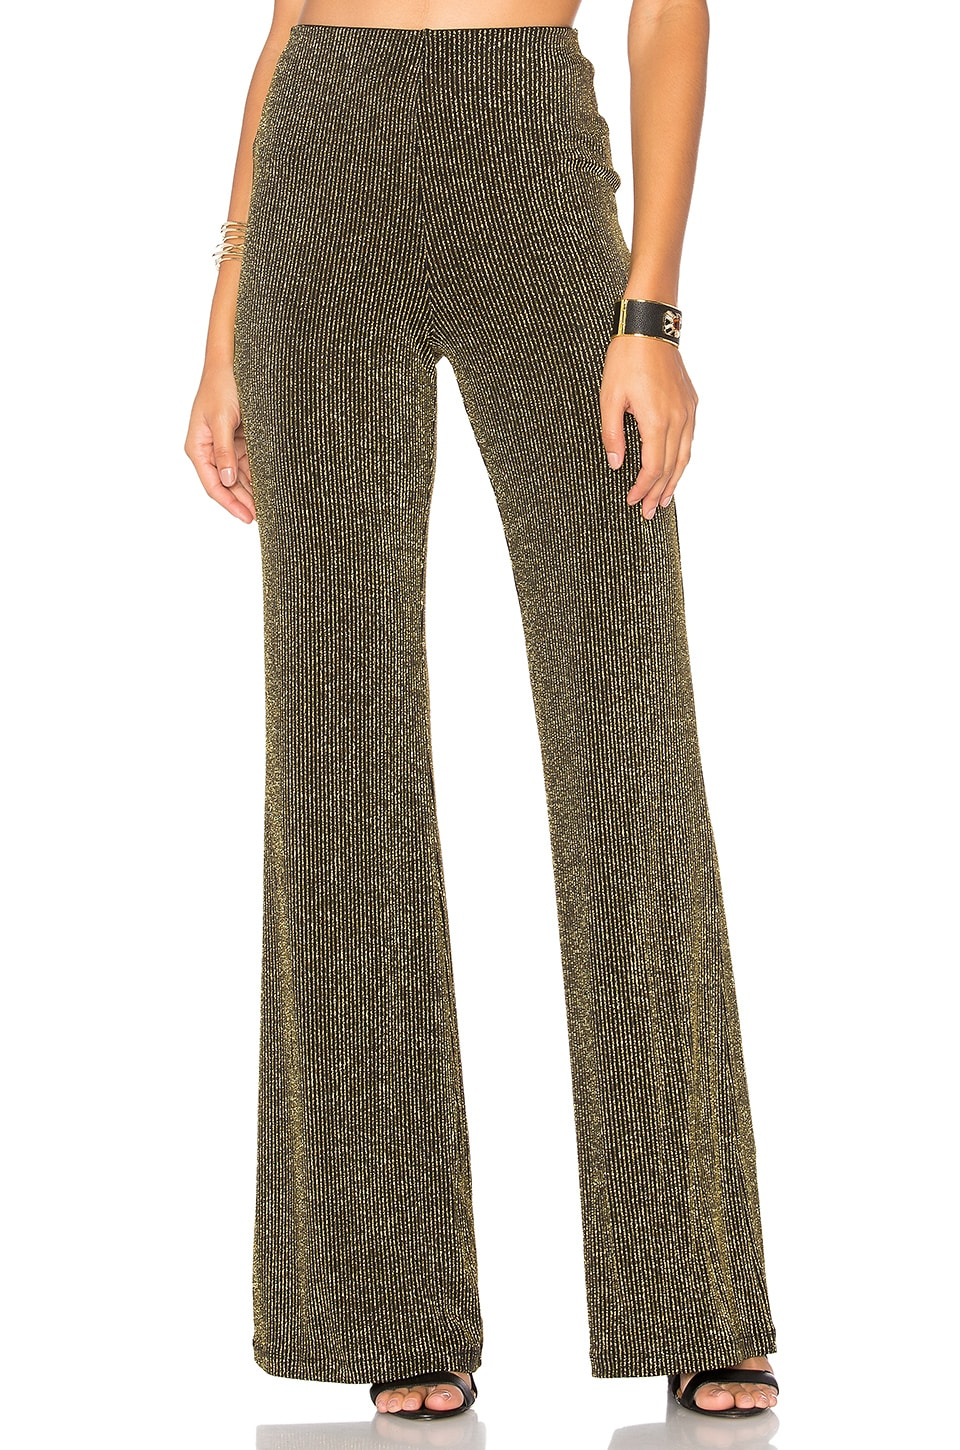 LPA Pants 93 in Black & Gold